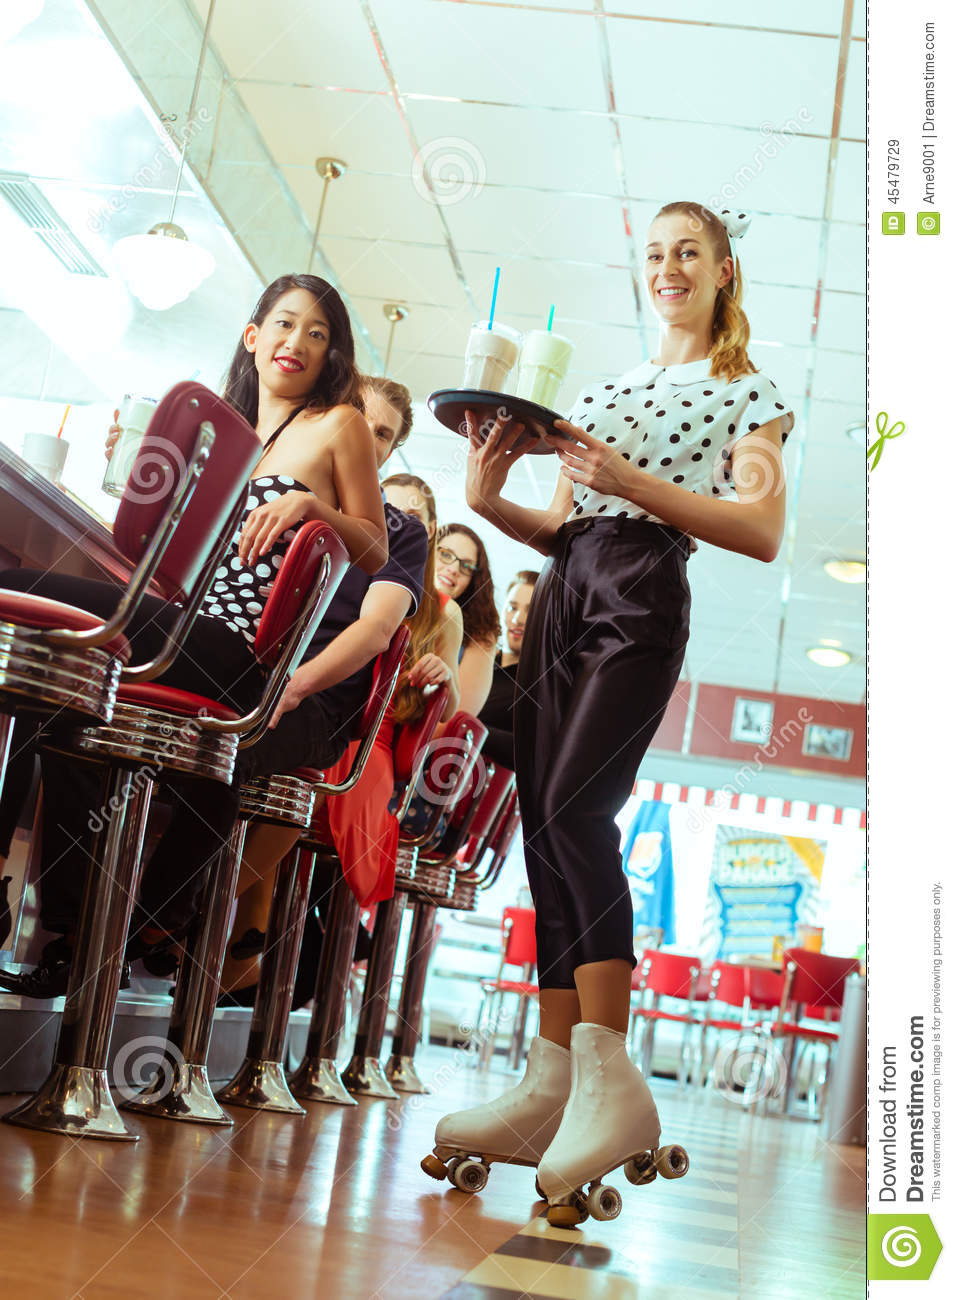 People In American Diner Or Restaurant With Waitress Stock